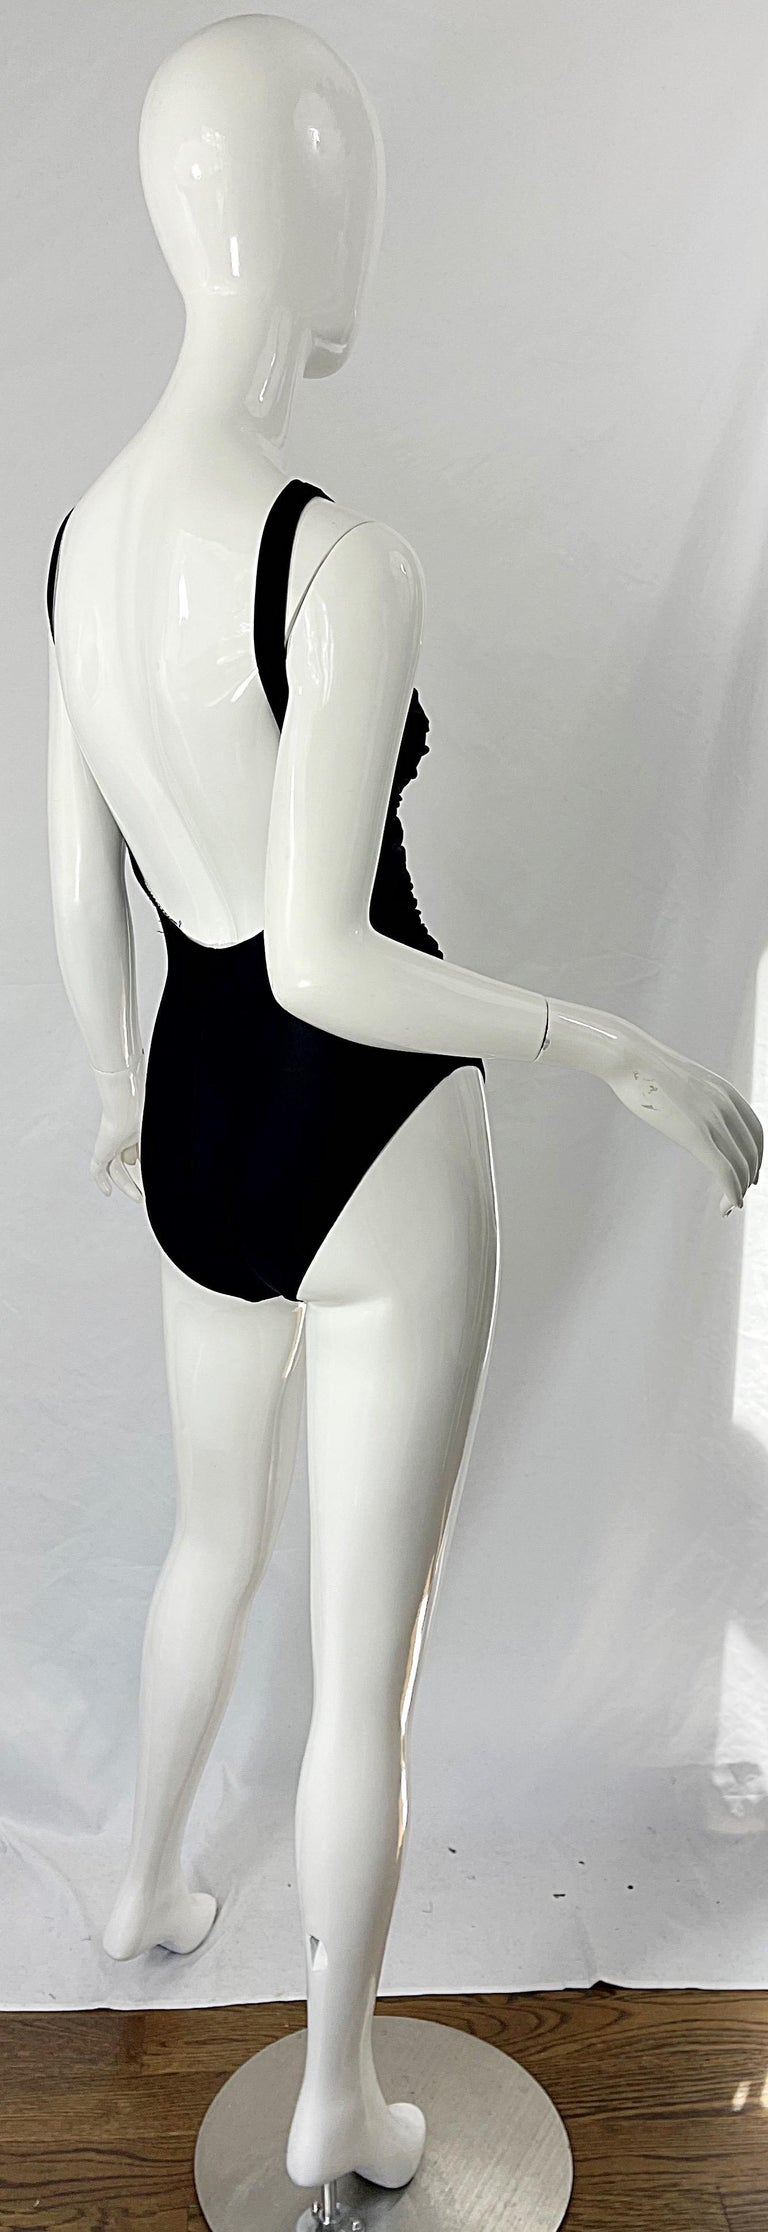 Bill Blass 1990s Black Sexy Cut Out Size 6 / 8 One Piece 90s Swimsuit Bodysuit For Sale 9